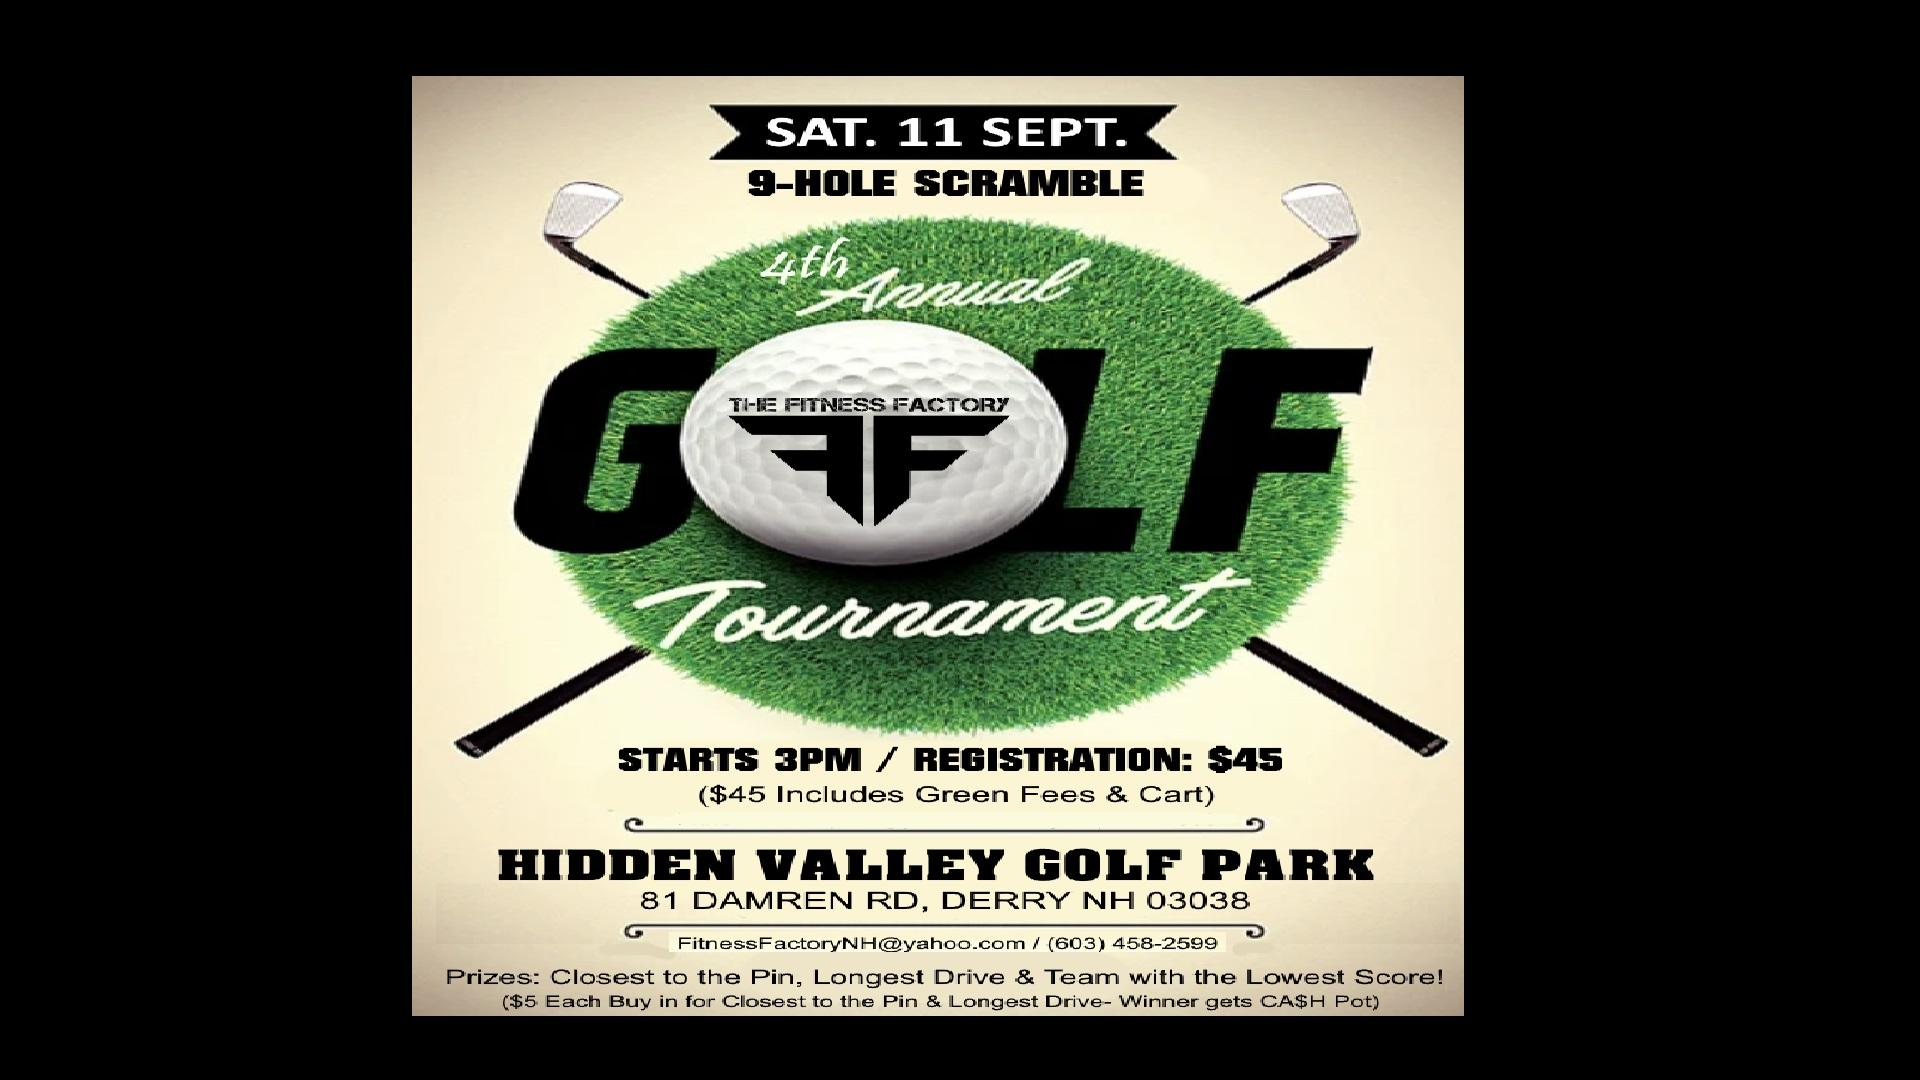 Fitness Factory: 4th Annual 9-Hole Scramble GOLF Tournament!